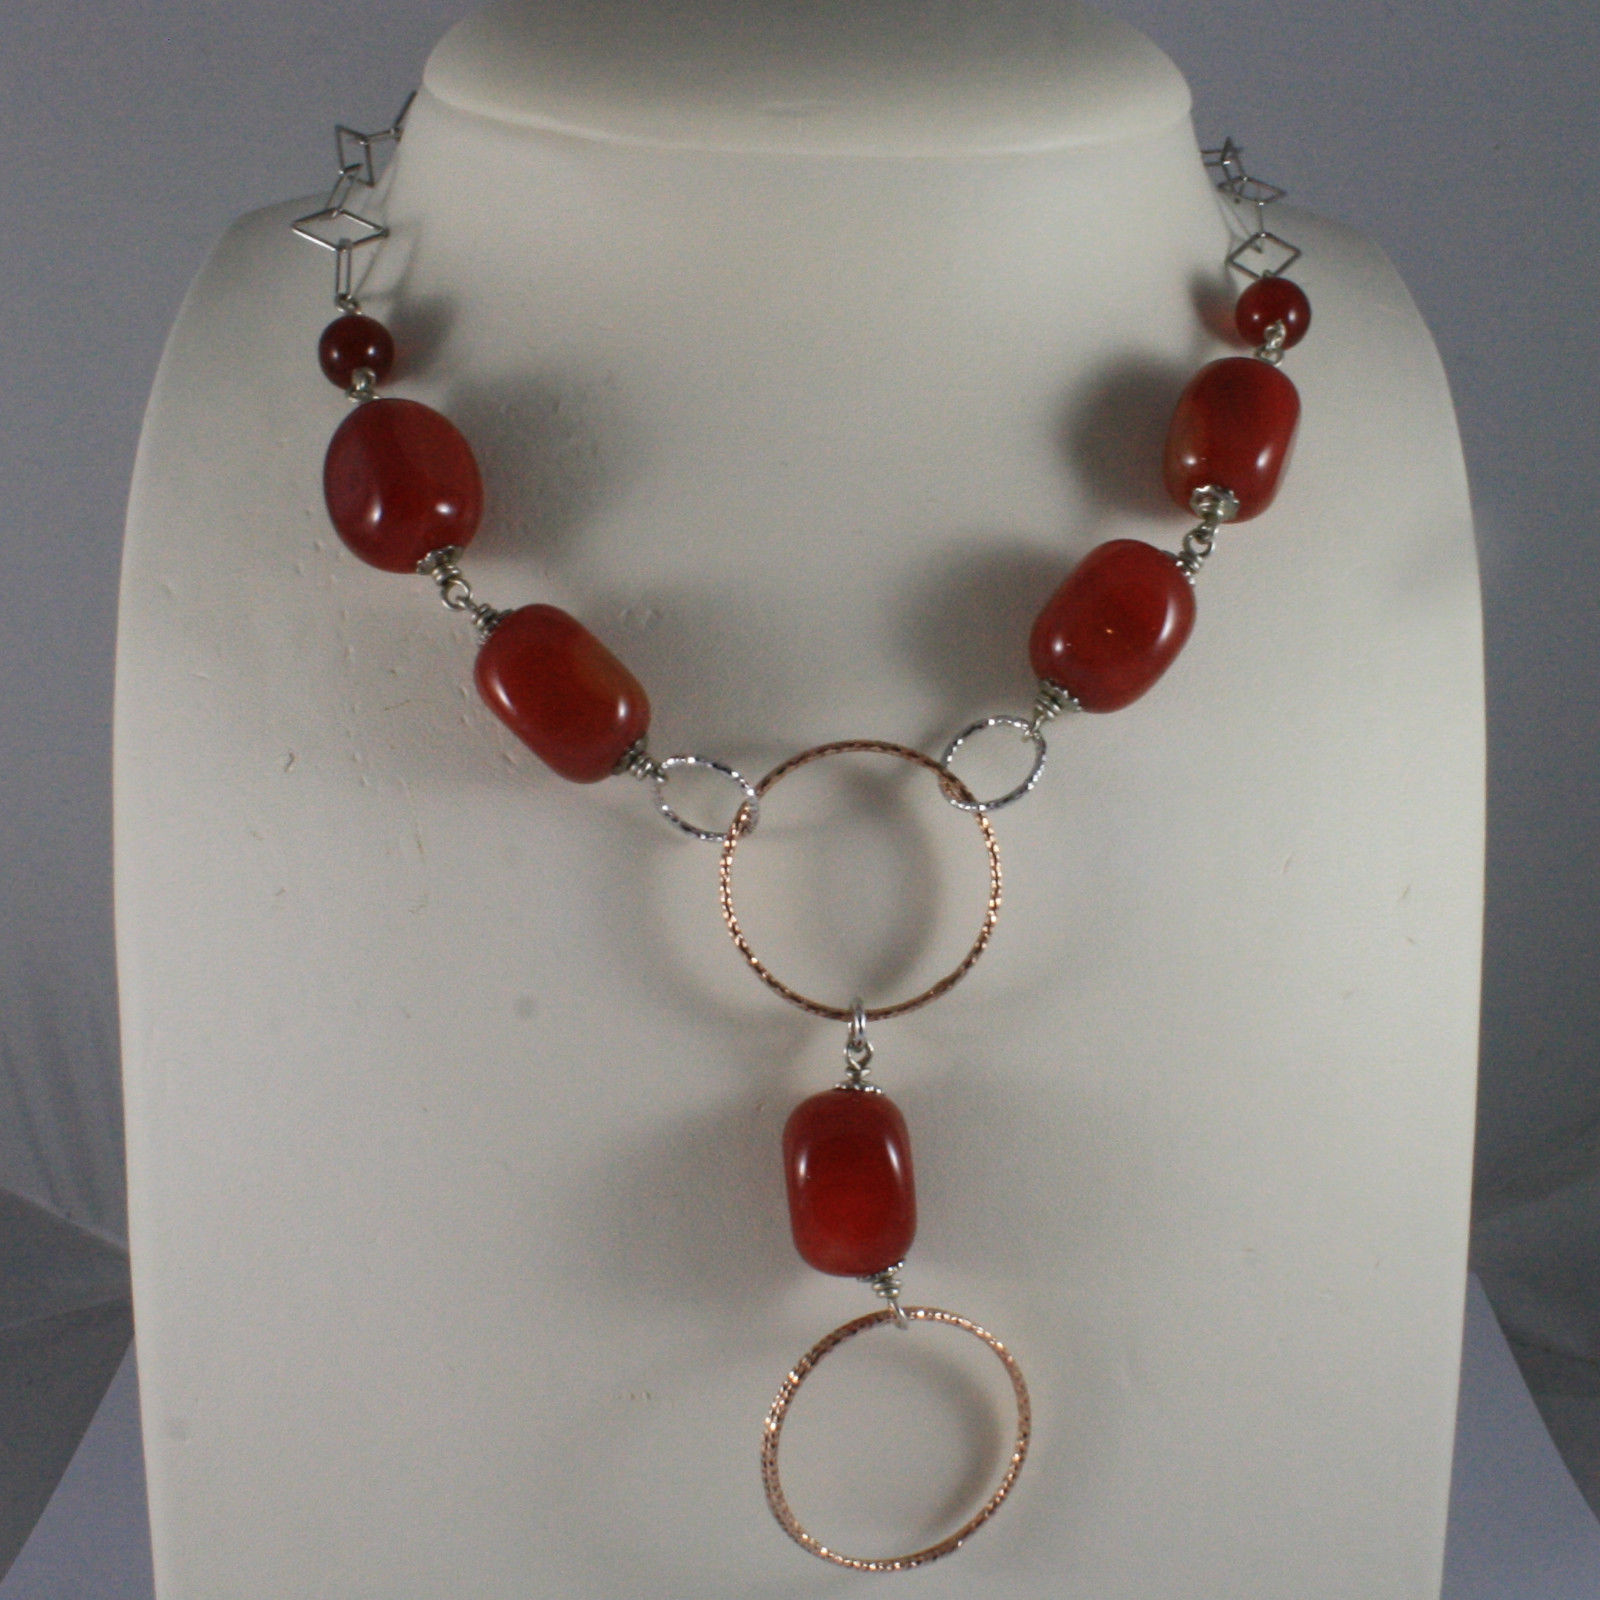 .925 SILVER RHODIUM NECKLACE WITH RED CARNELIAN AND ROSE GOLD PLATED WHEELS